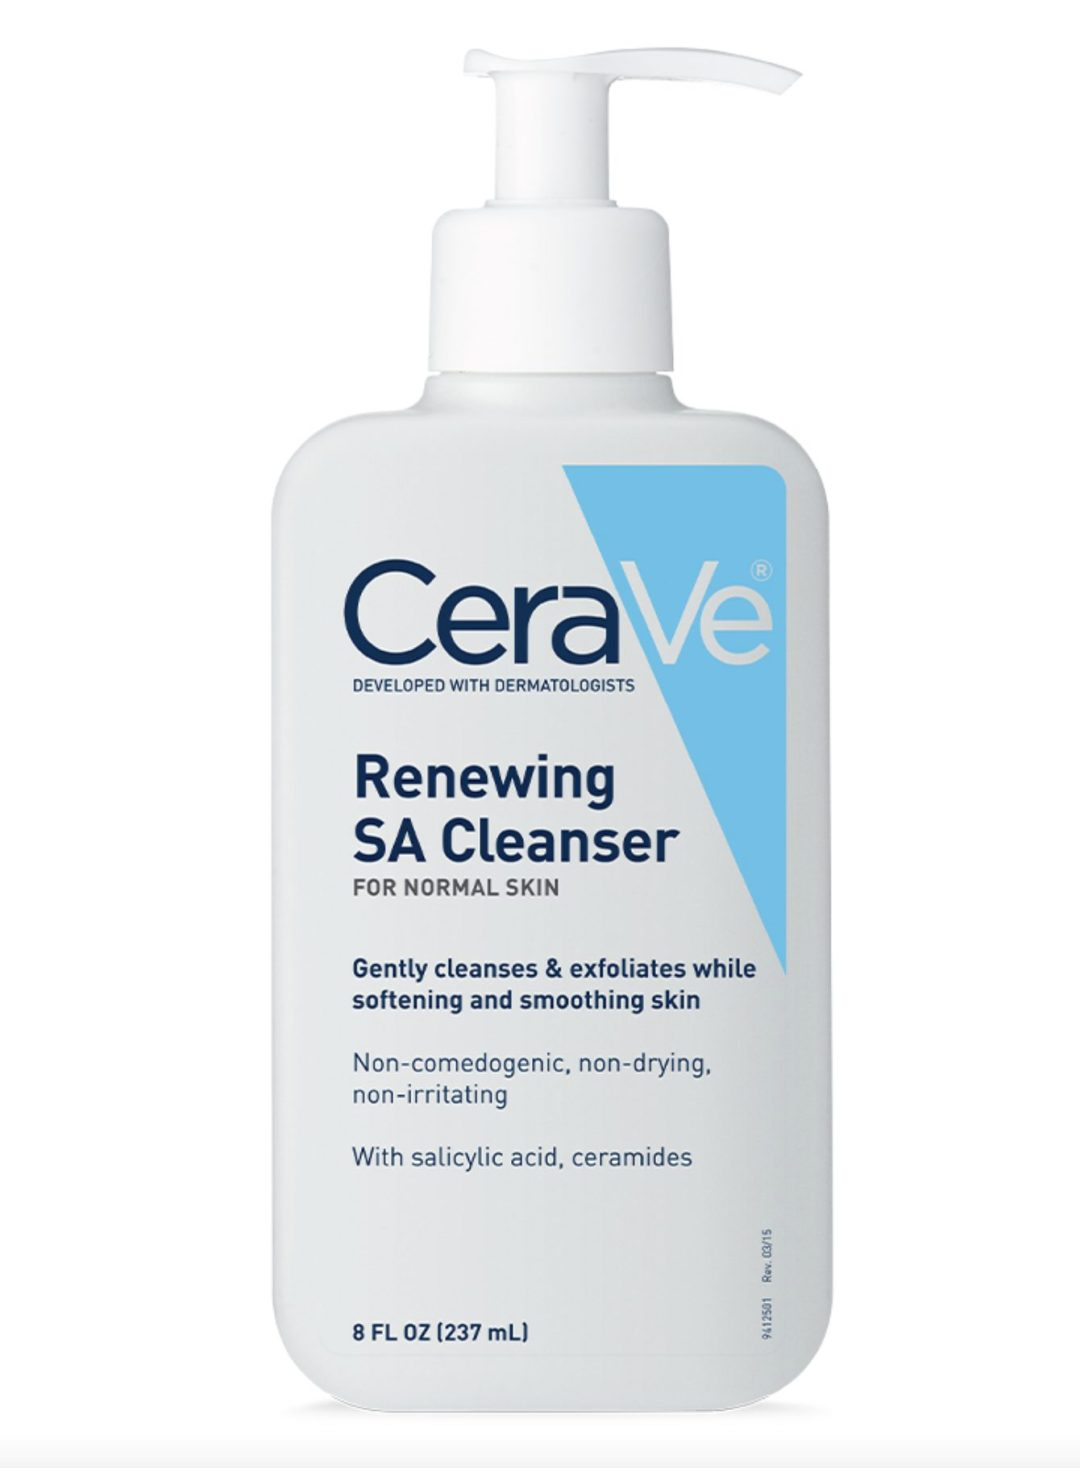 CeraVe Renewing Cleanser for Best Drugstore Skincare Products